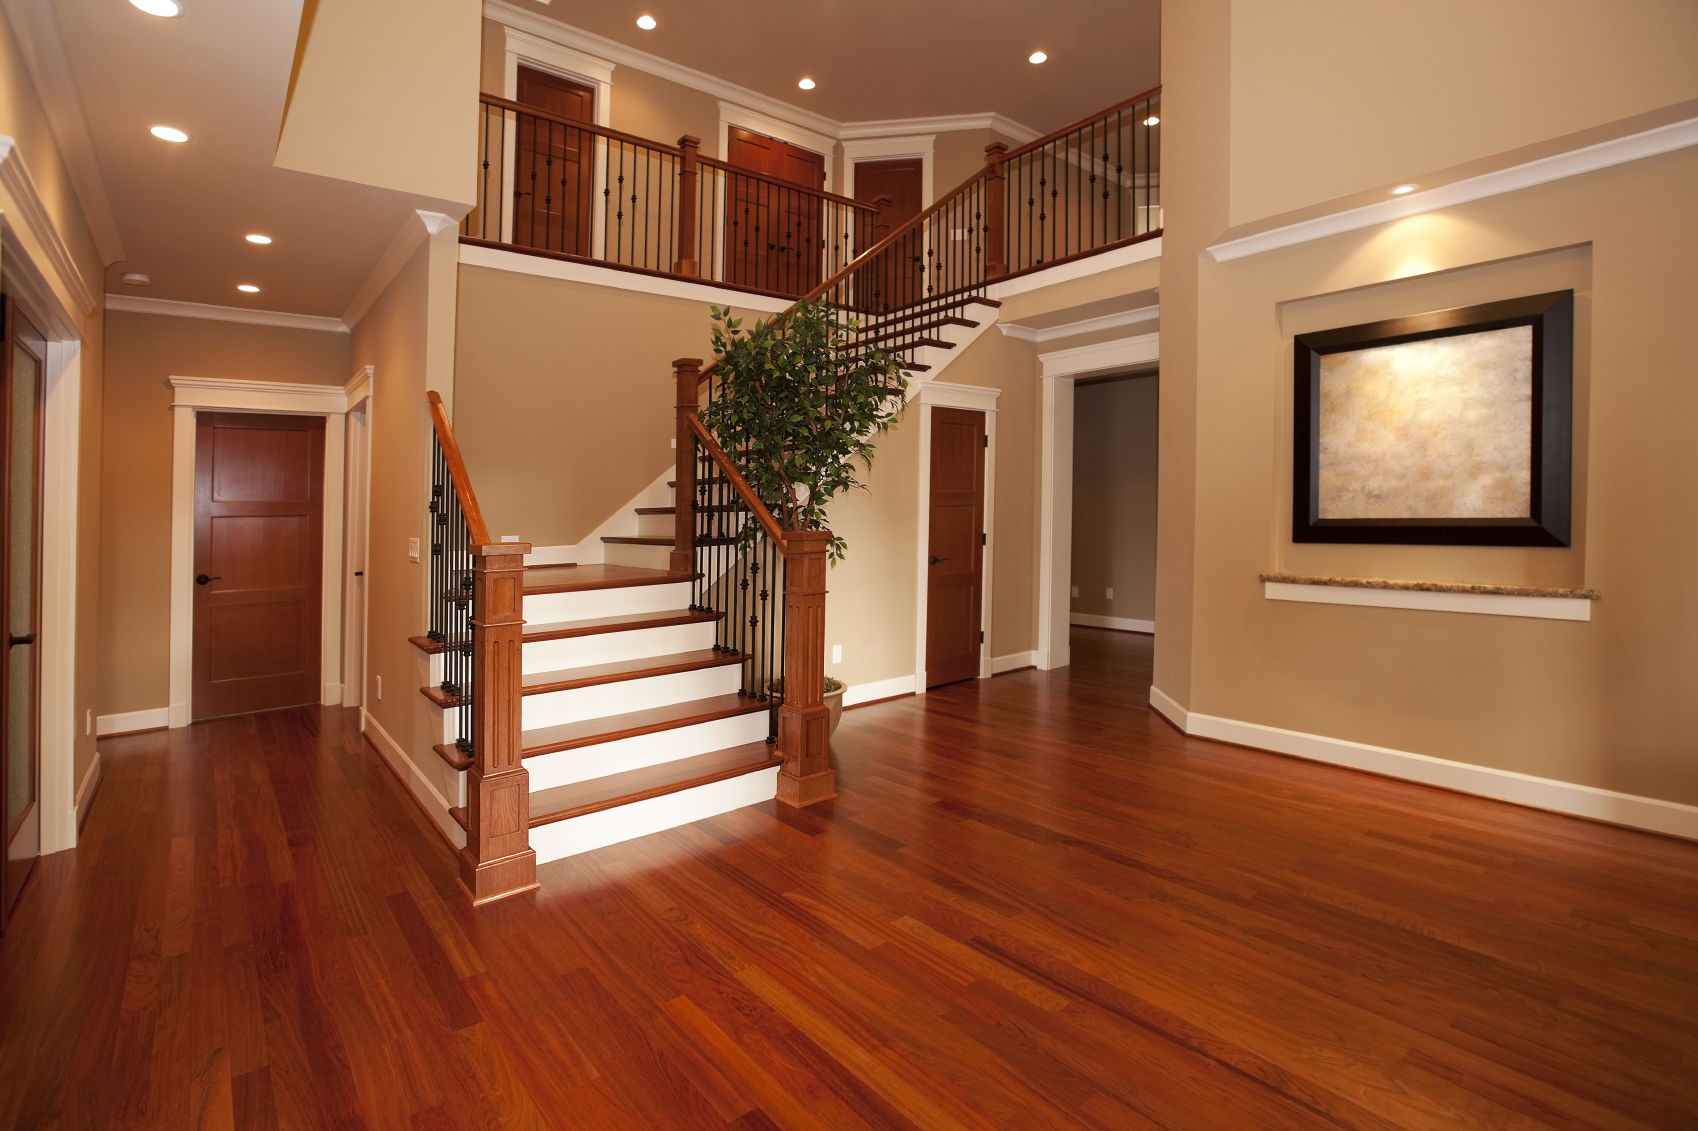 Hardwood Floors in Atlanta, Ga by Metro Atl. Floors Inc.